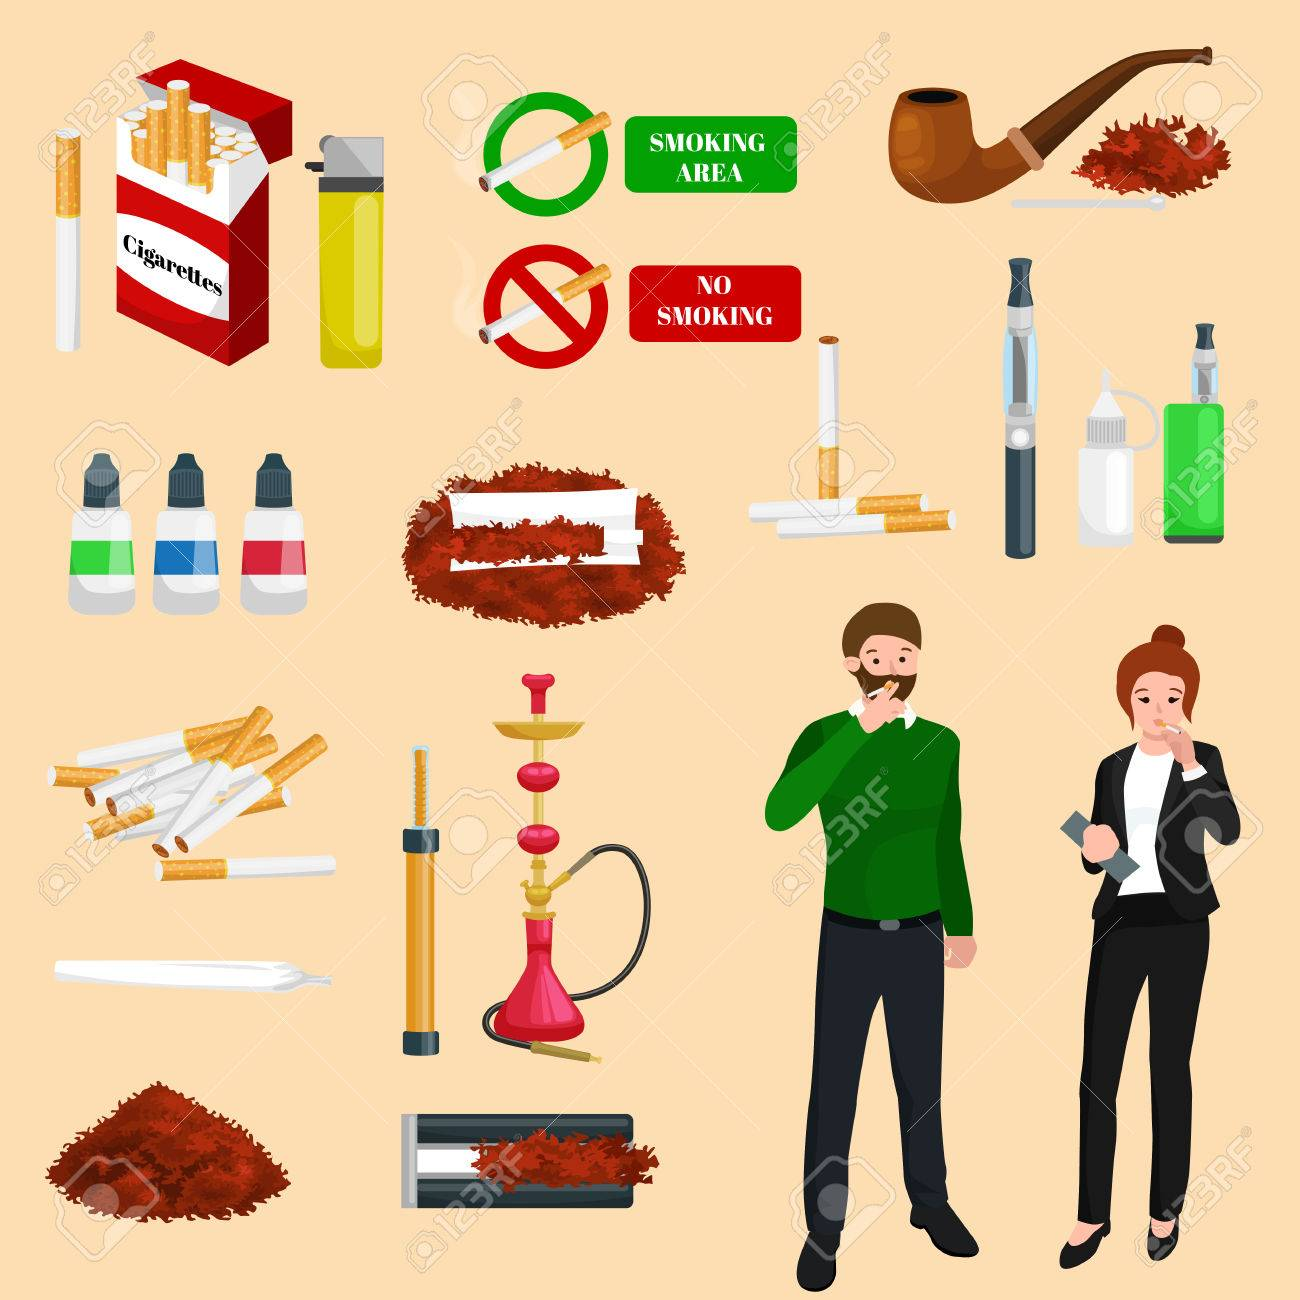 Smoking tobacco decorative icons set with cigarettes hookah cigars alcohol lighter on brown background isolated vector illustration - 67294893